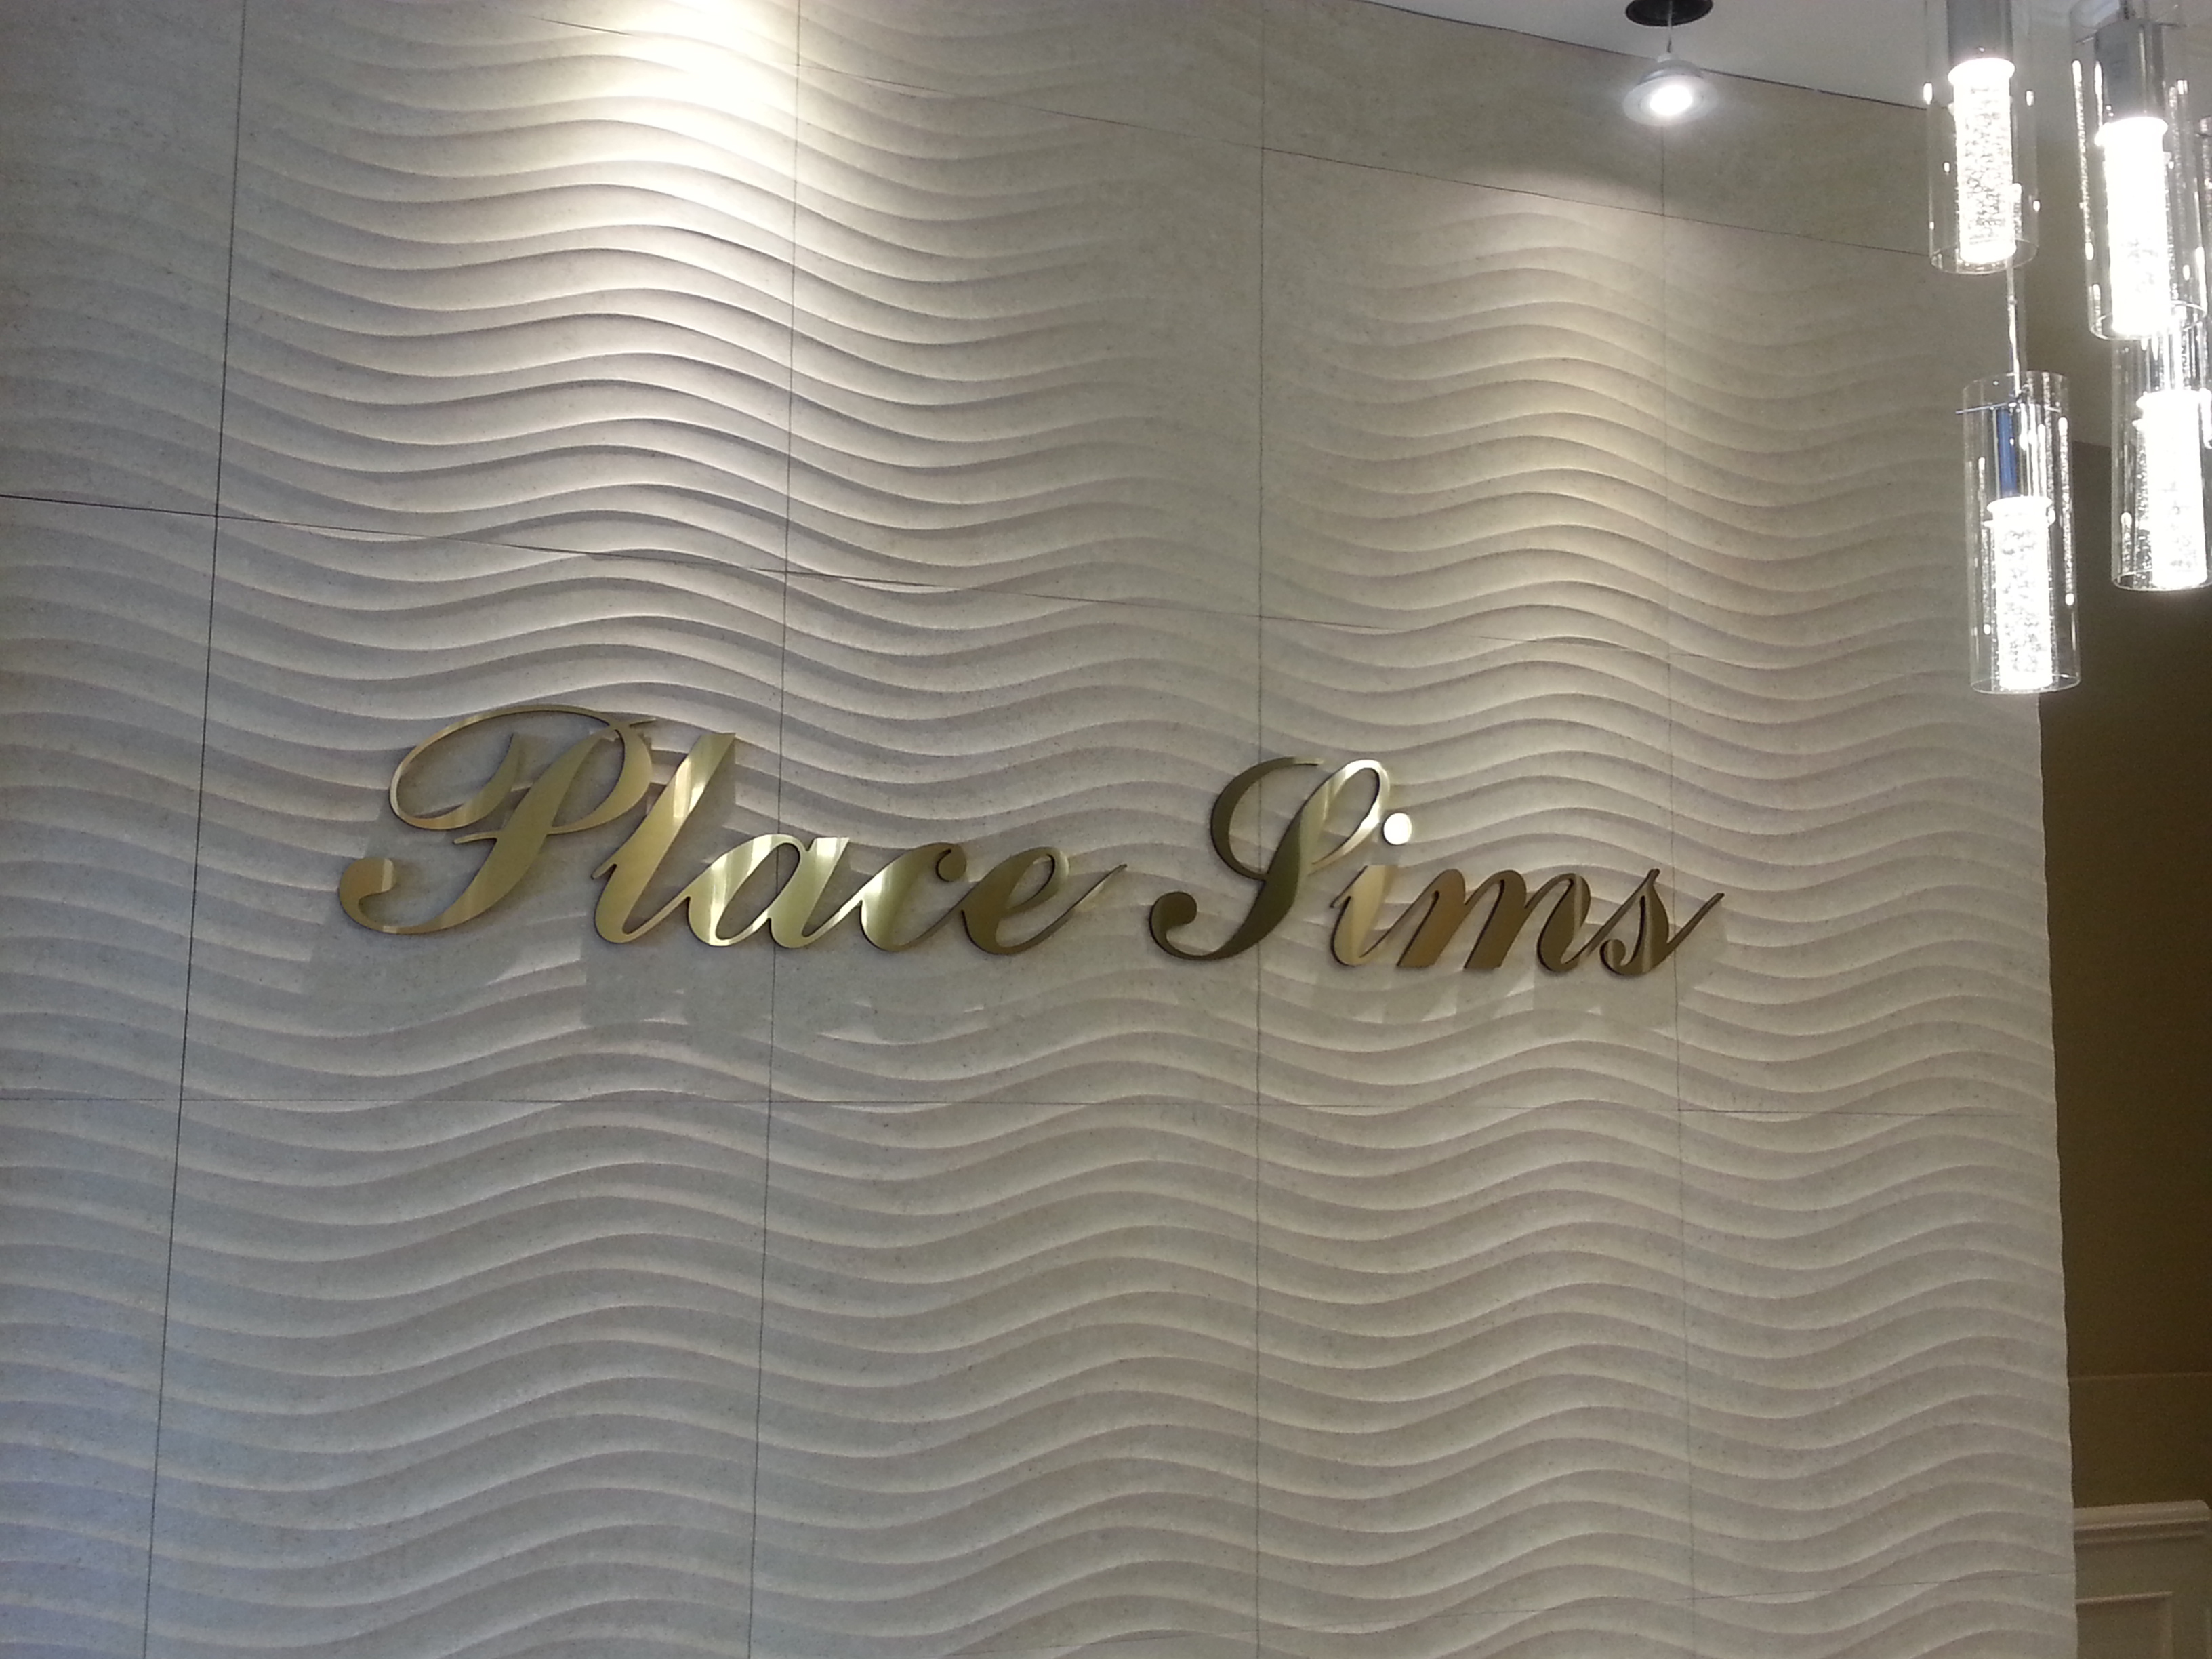 Dimensional Lettering - Place Sims